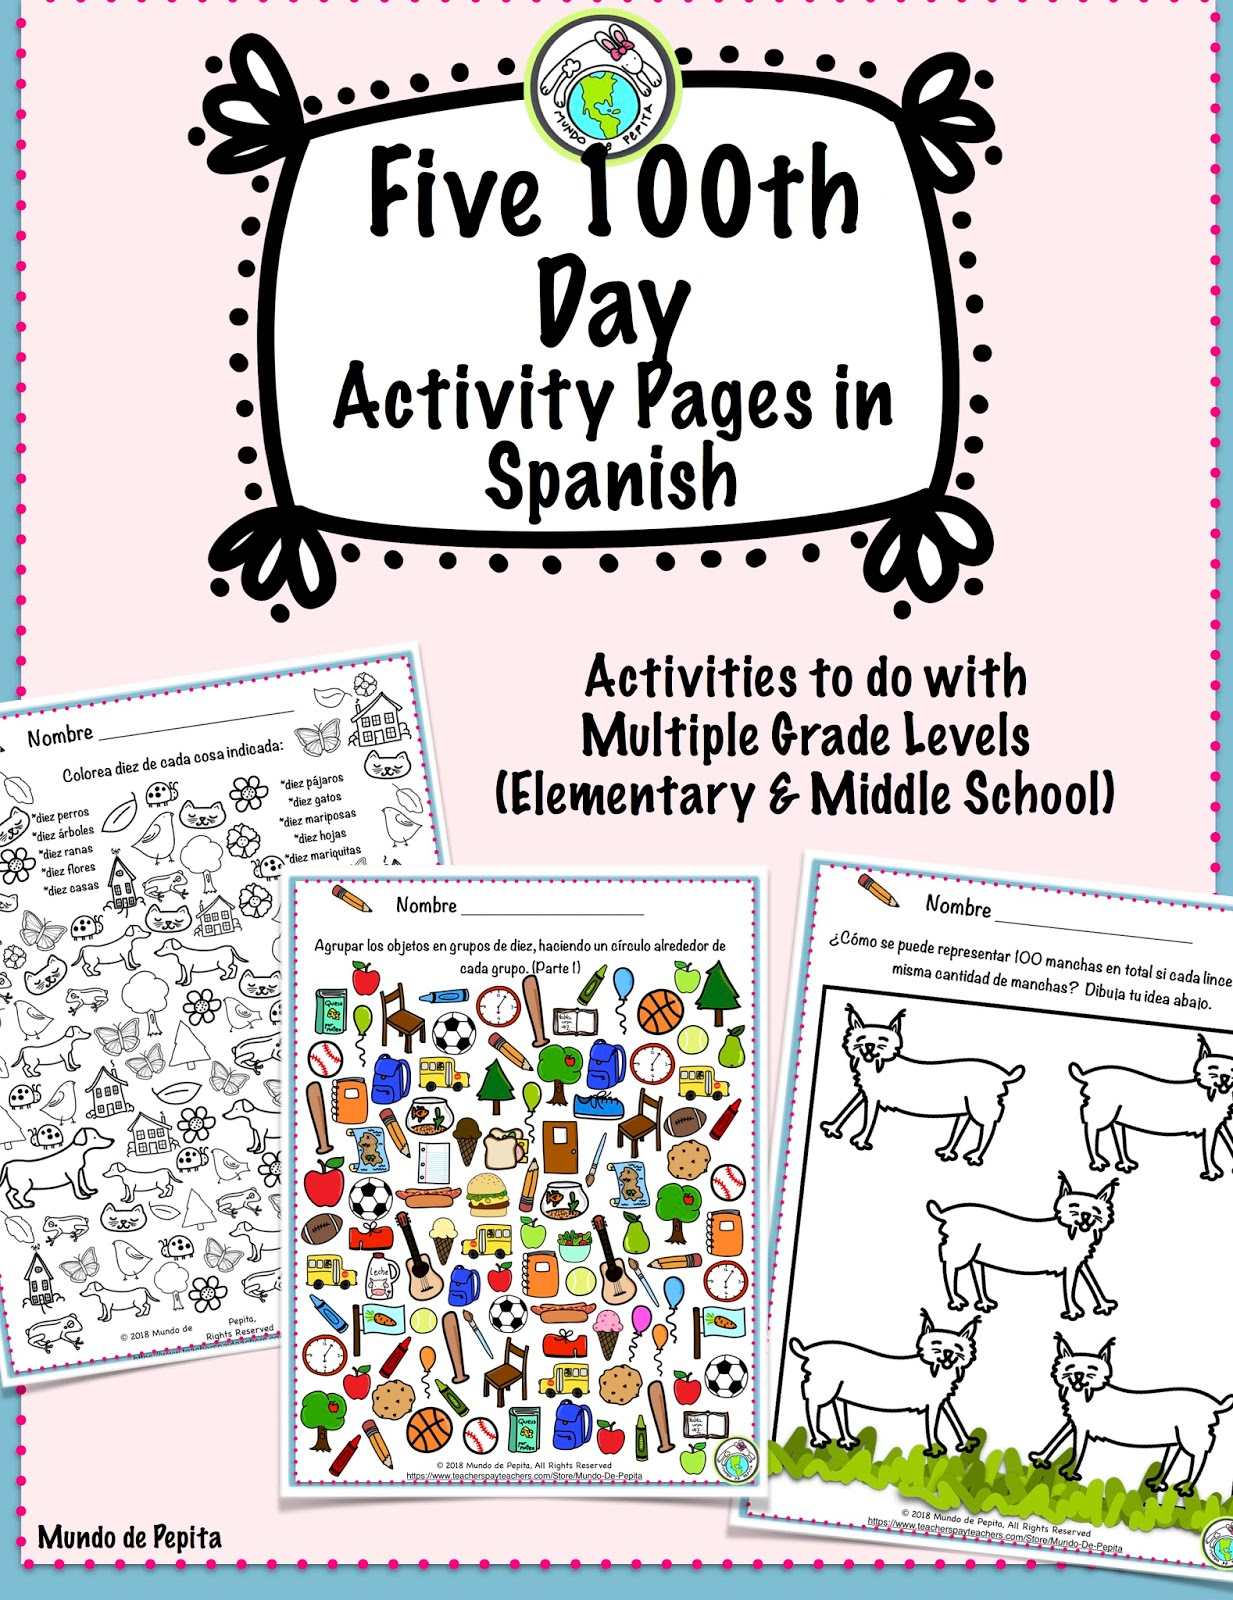 3 Activities To Celebrate 100th Day Of School In Spanish